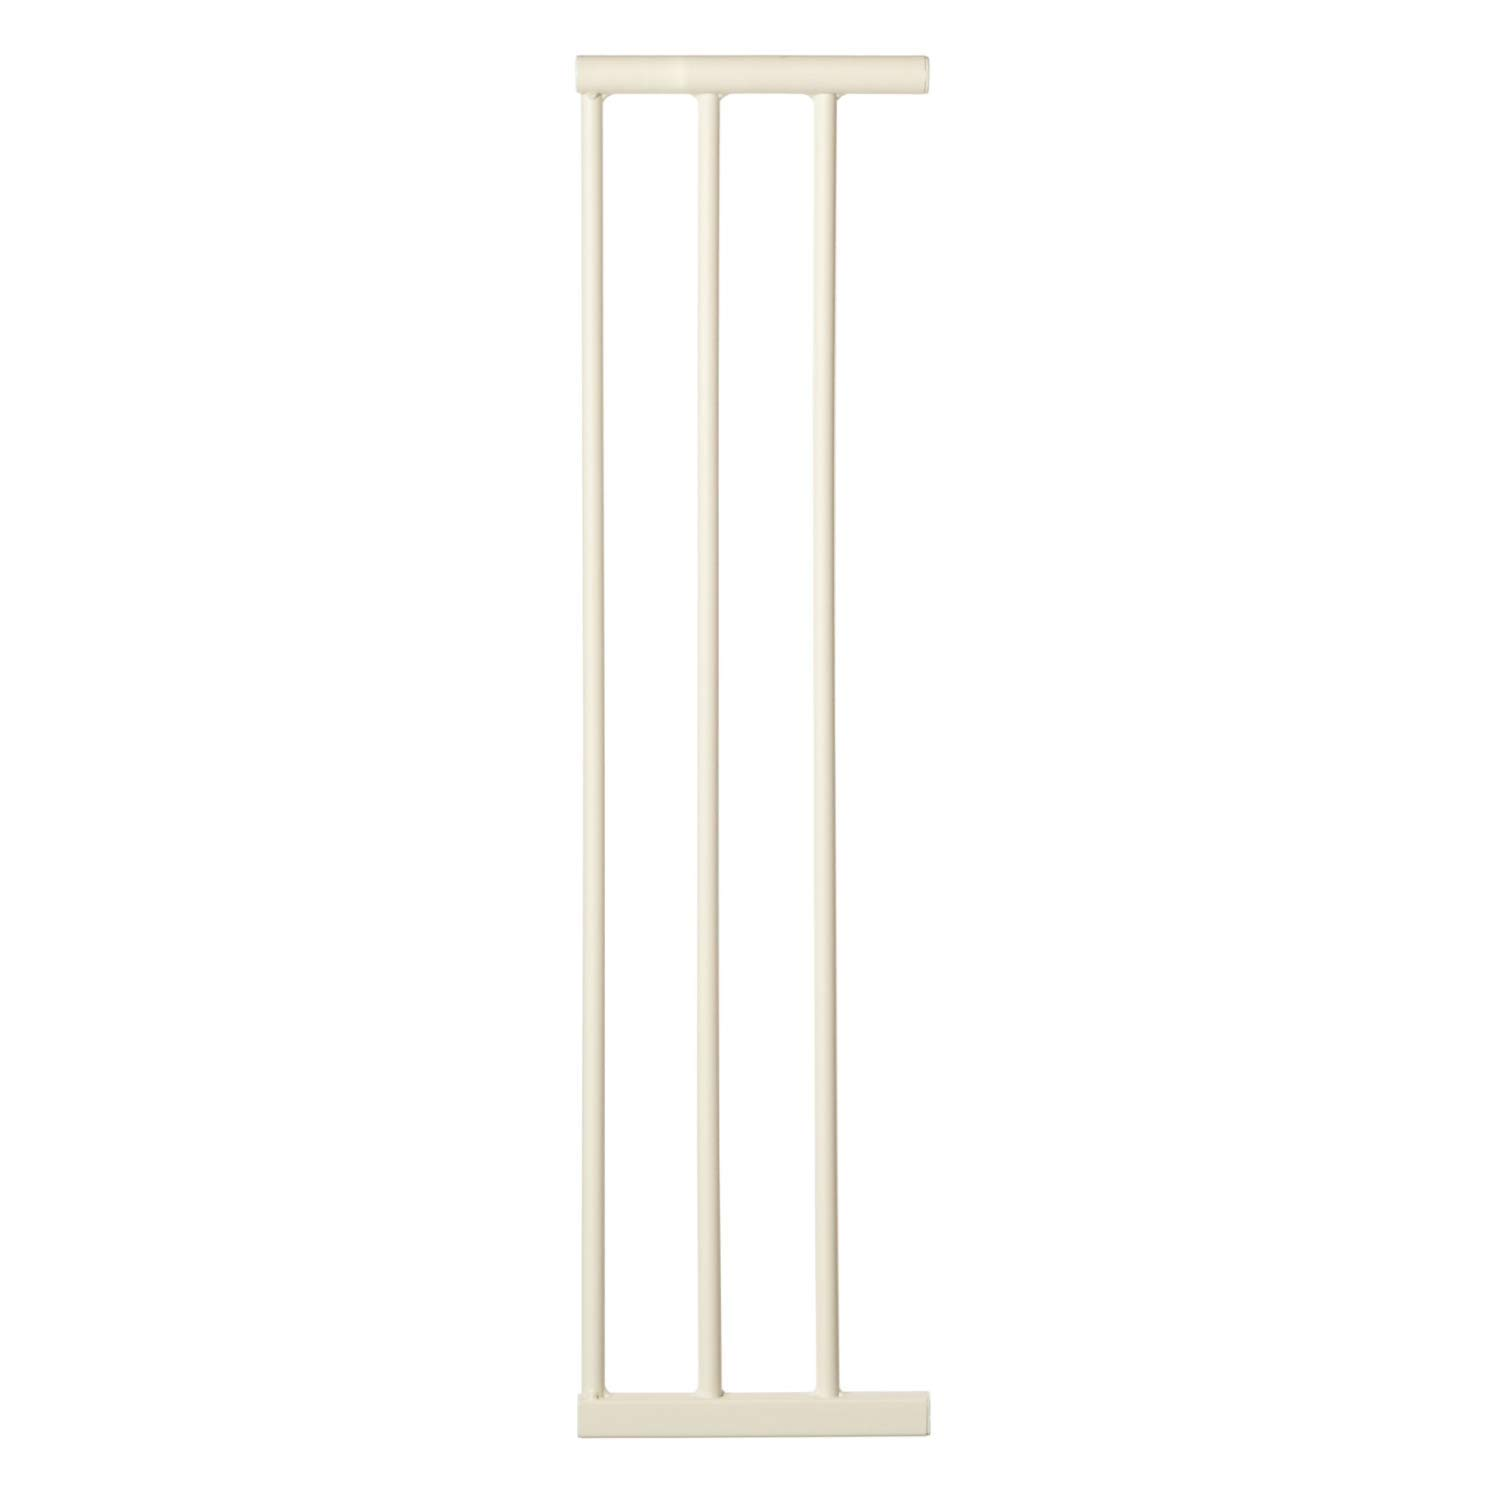 """Toddleroo by North States 7.25"""" Extension for """"Arched Auto Close with Easy Step Baby Gate"""". Fits openings up to 63.38'' wide. Add up to 3 extensions. No tools required. (Adds 7.25"""